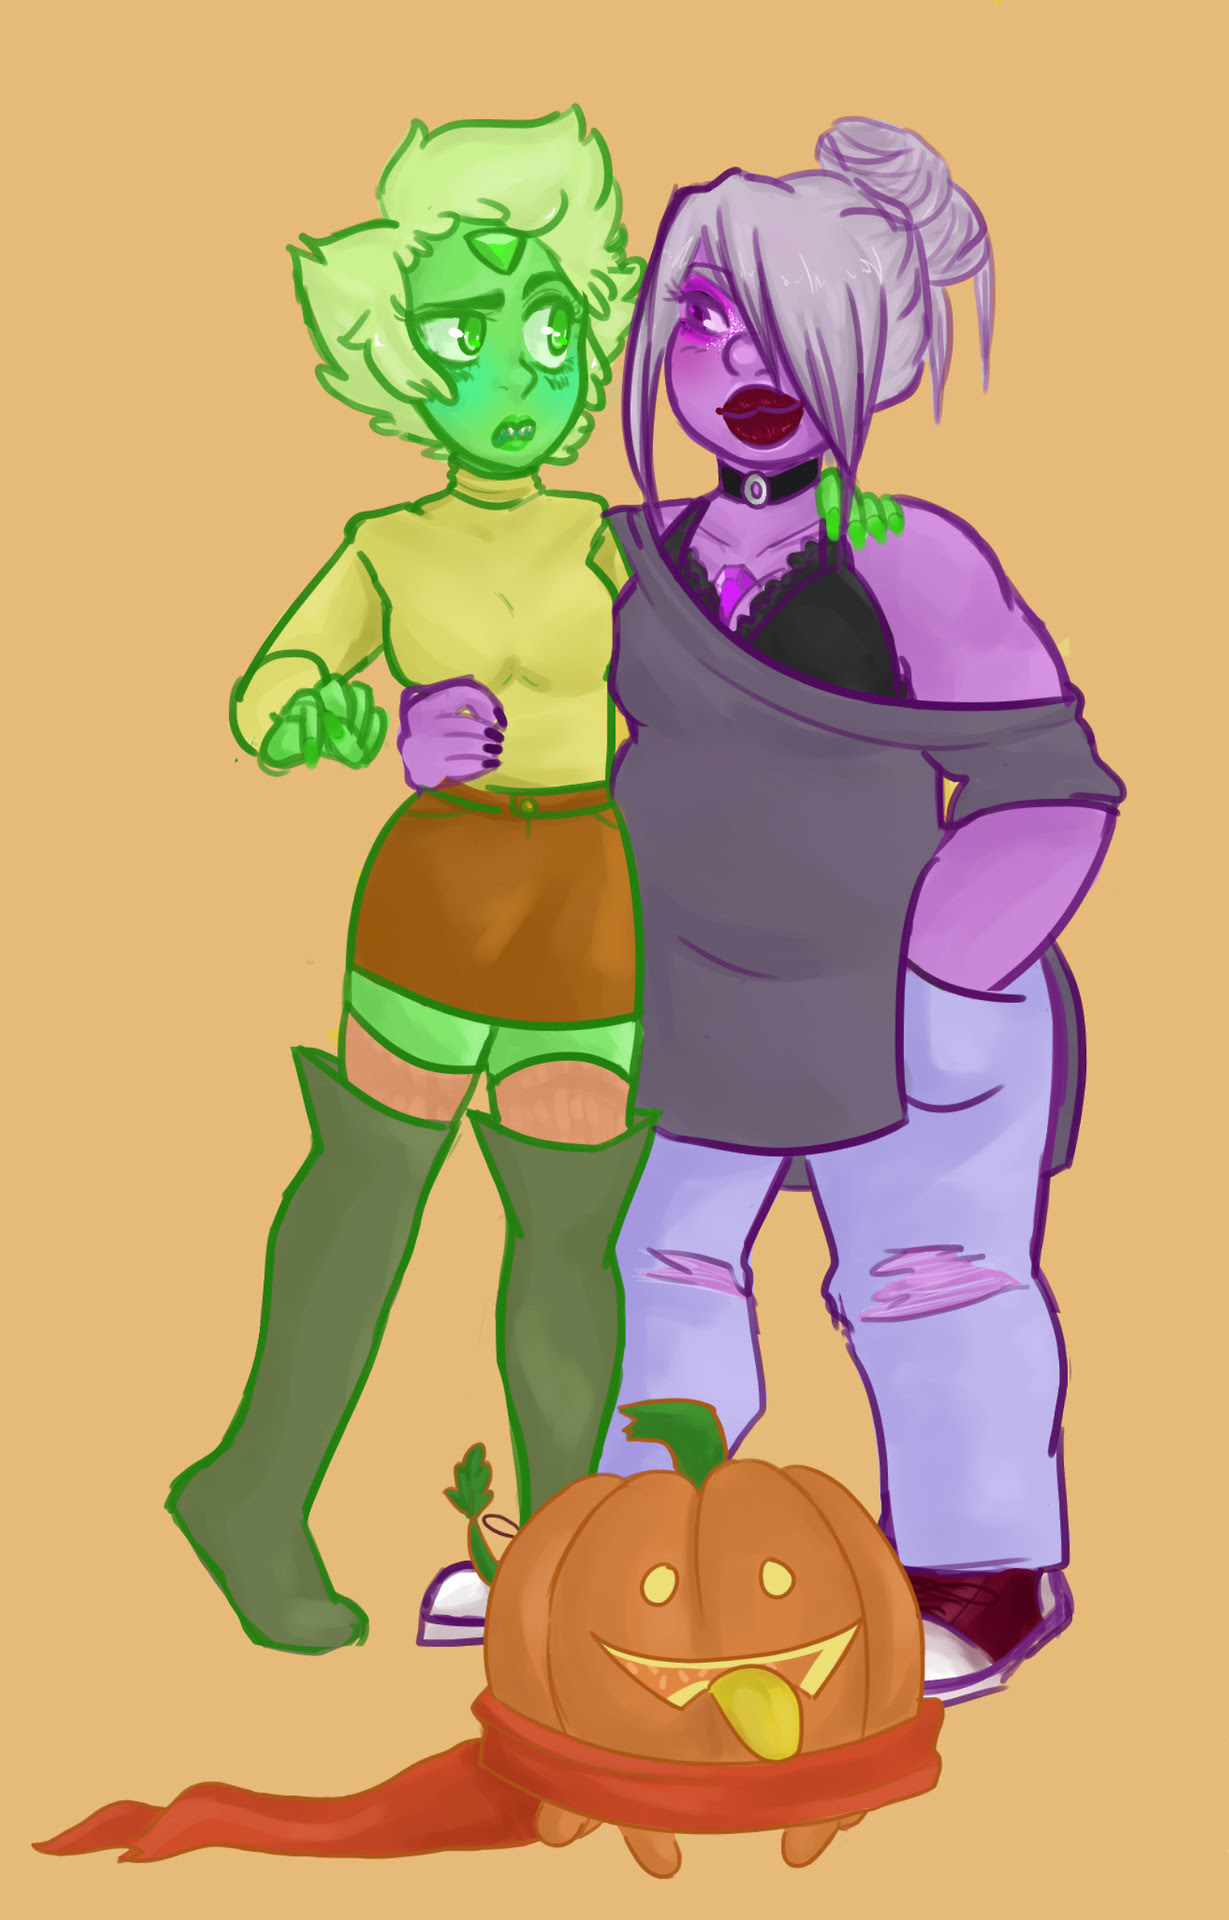 Peridot is still trying to understand seasonal fashions